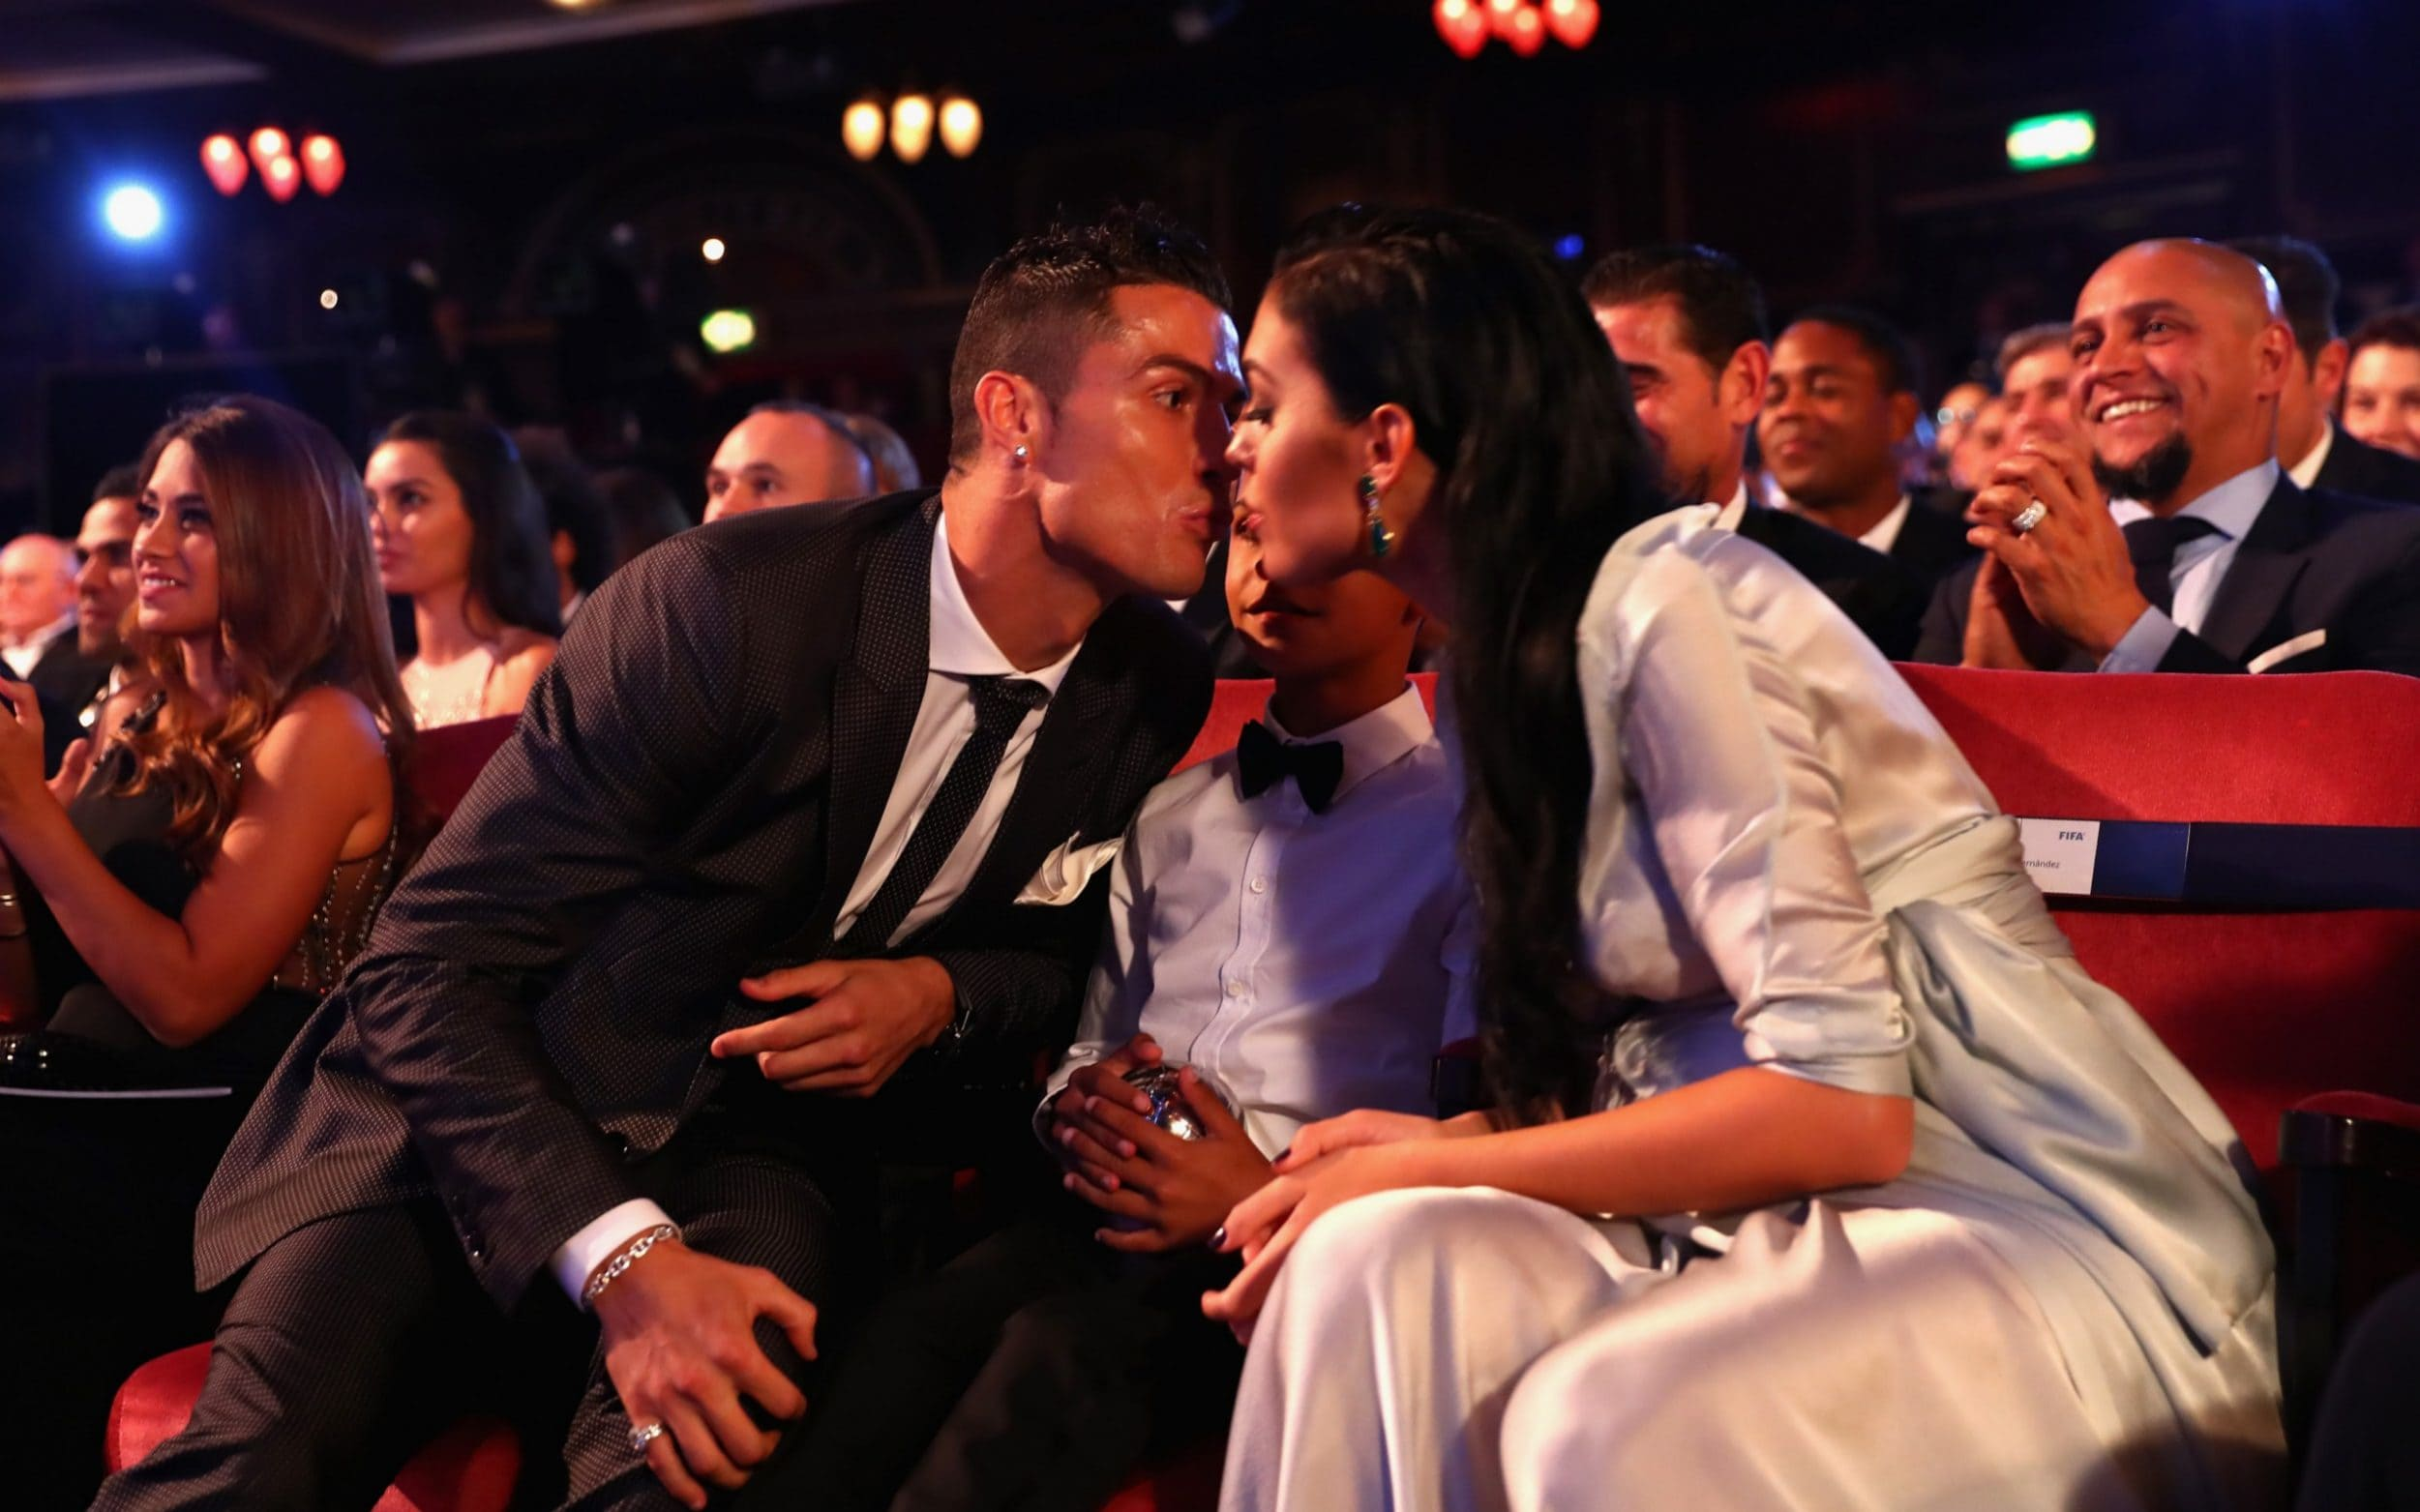 Cristiano Ronaldo kisses his son Cristiano Jnr and pregnant girlfriend Georgina Rodriguez before going up on stage to pick up his World best player award  (Video)